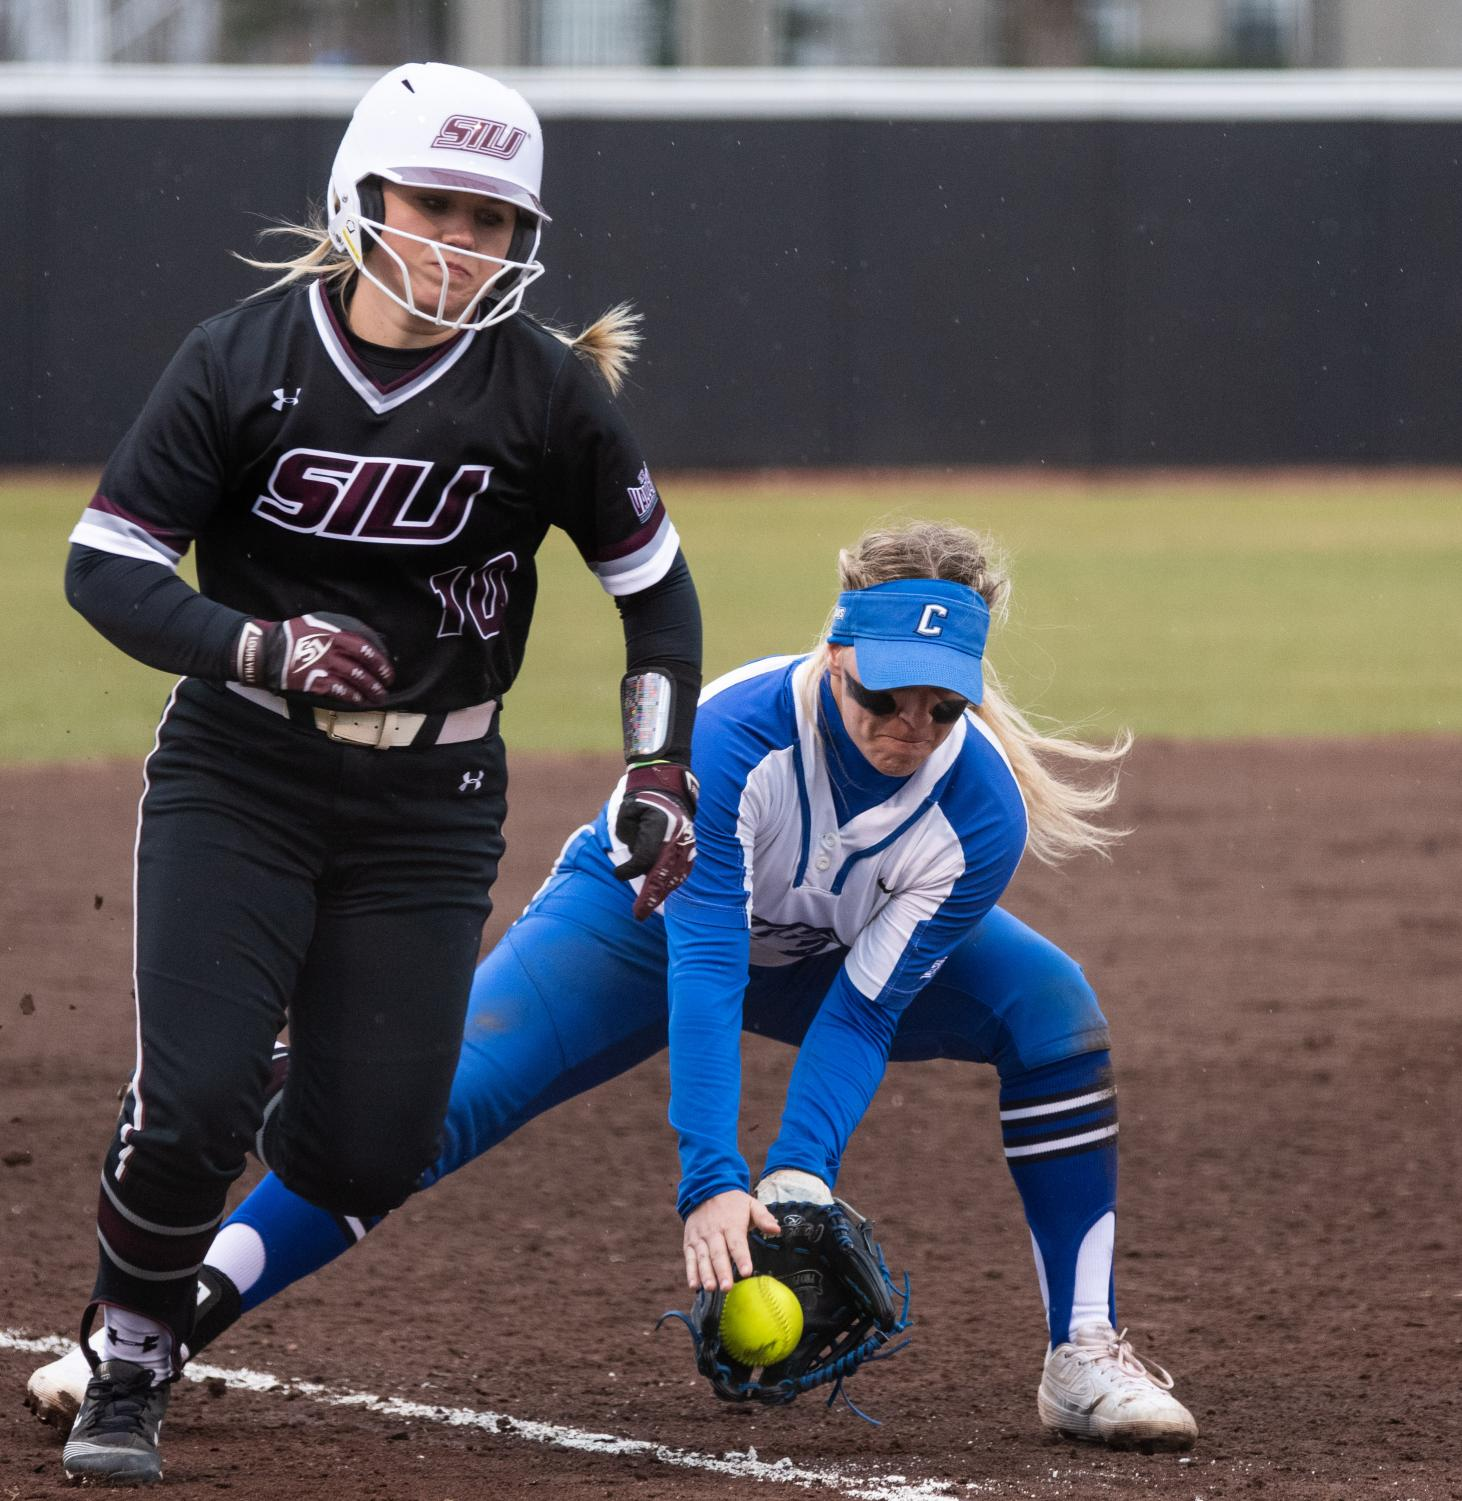 Saluki+sophomore+infielder+Meredith+Wernig+runs+home+on+Friday%2C+Feb.+22%2C+2019+during+the+Salukis+1-0+win+against+the+Creighton+Jays+at+Charlotte+West+Stadium.